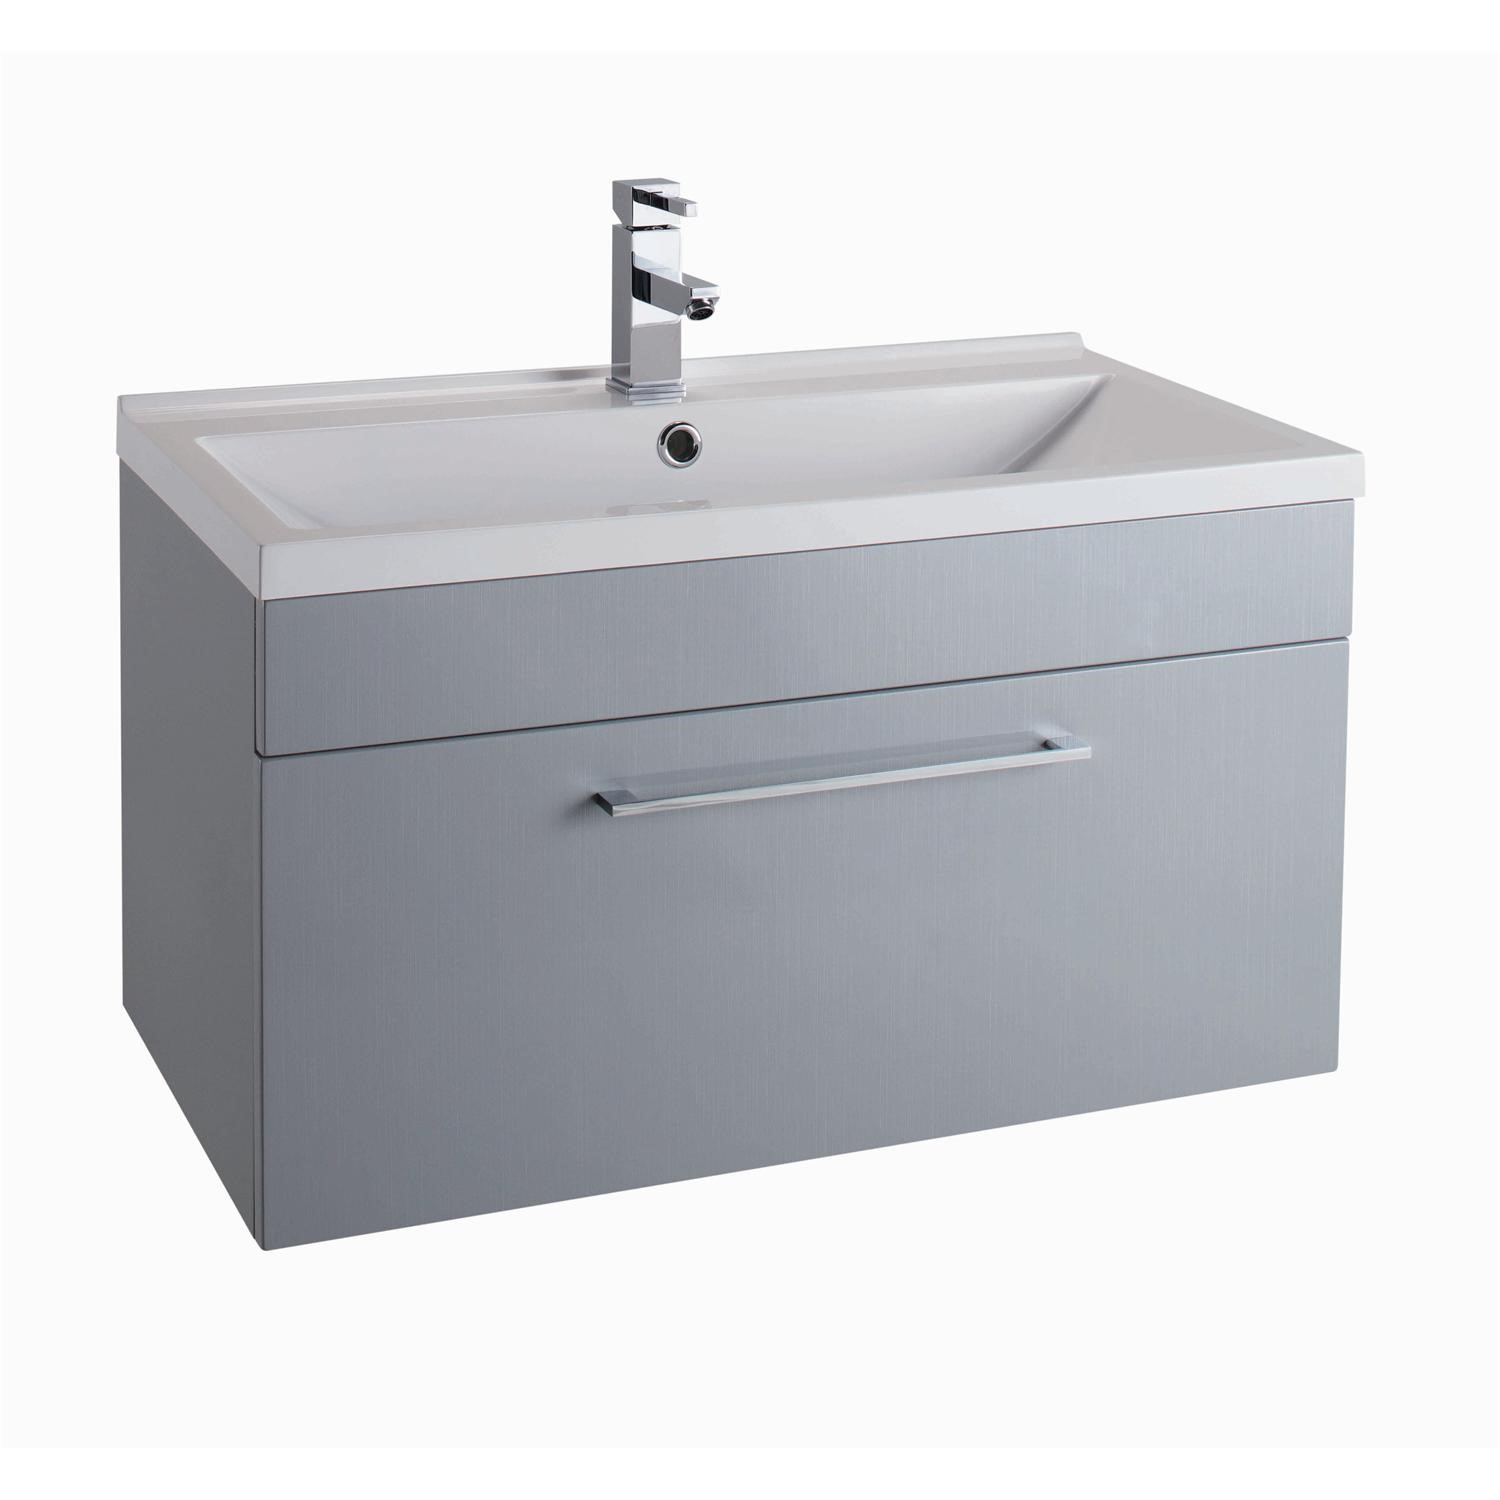 buy popular 843c1 5ec8d Grey Wall Hung Vanity Unit - Without Basin - 800mm Wide